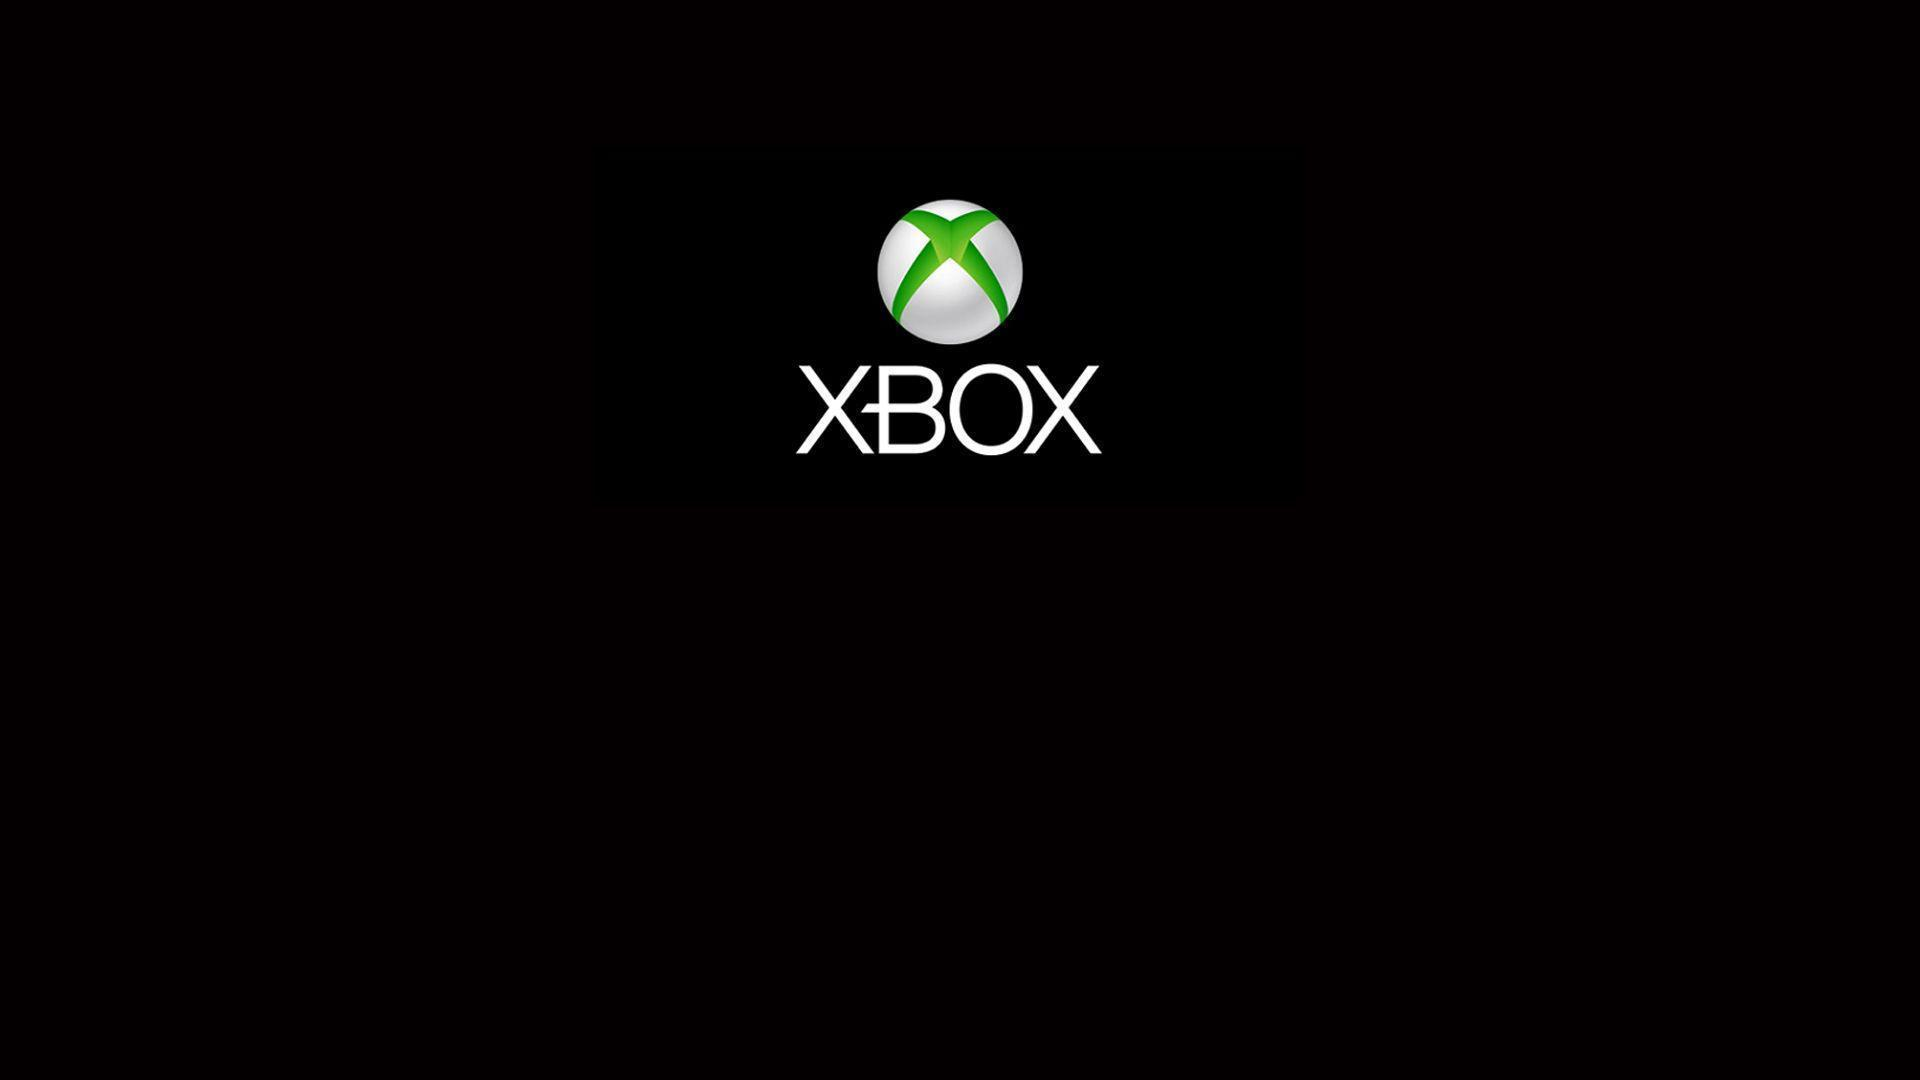 Iphone wallpaper xbox - Wallpapers For Xbox 360 Logo Black Background